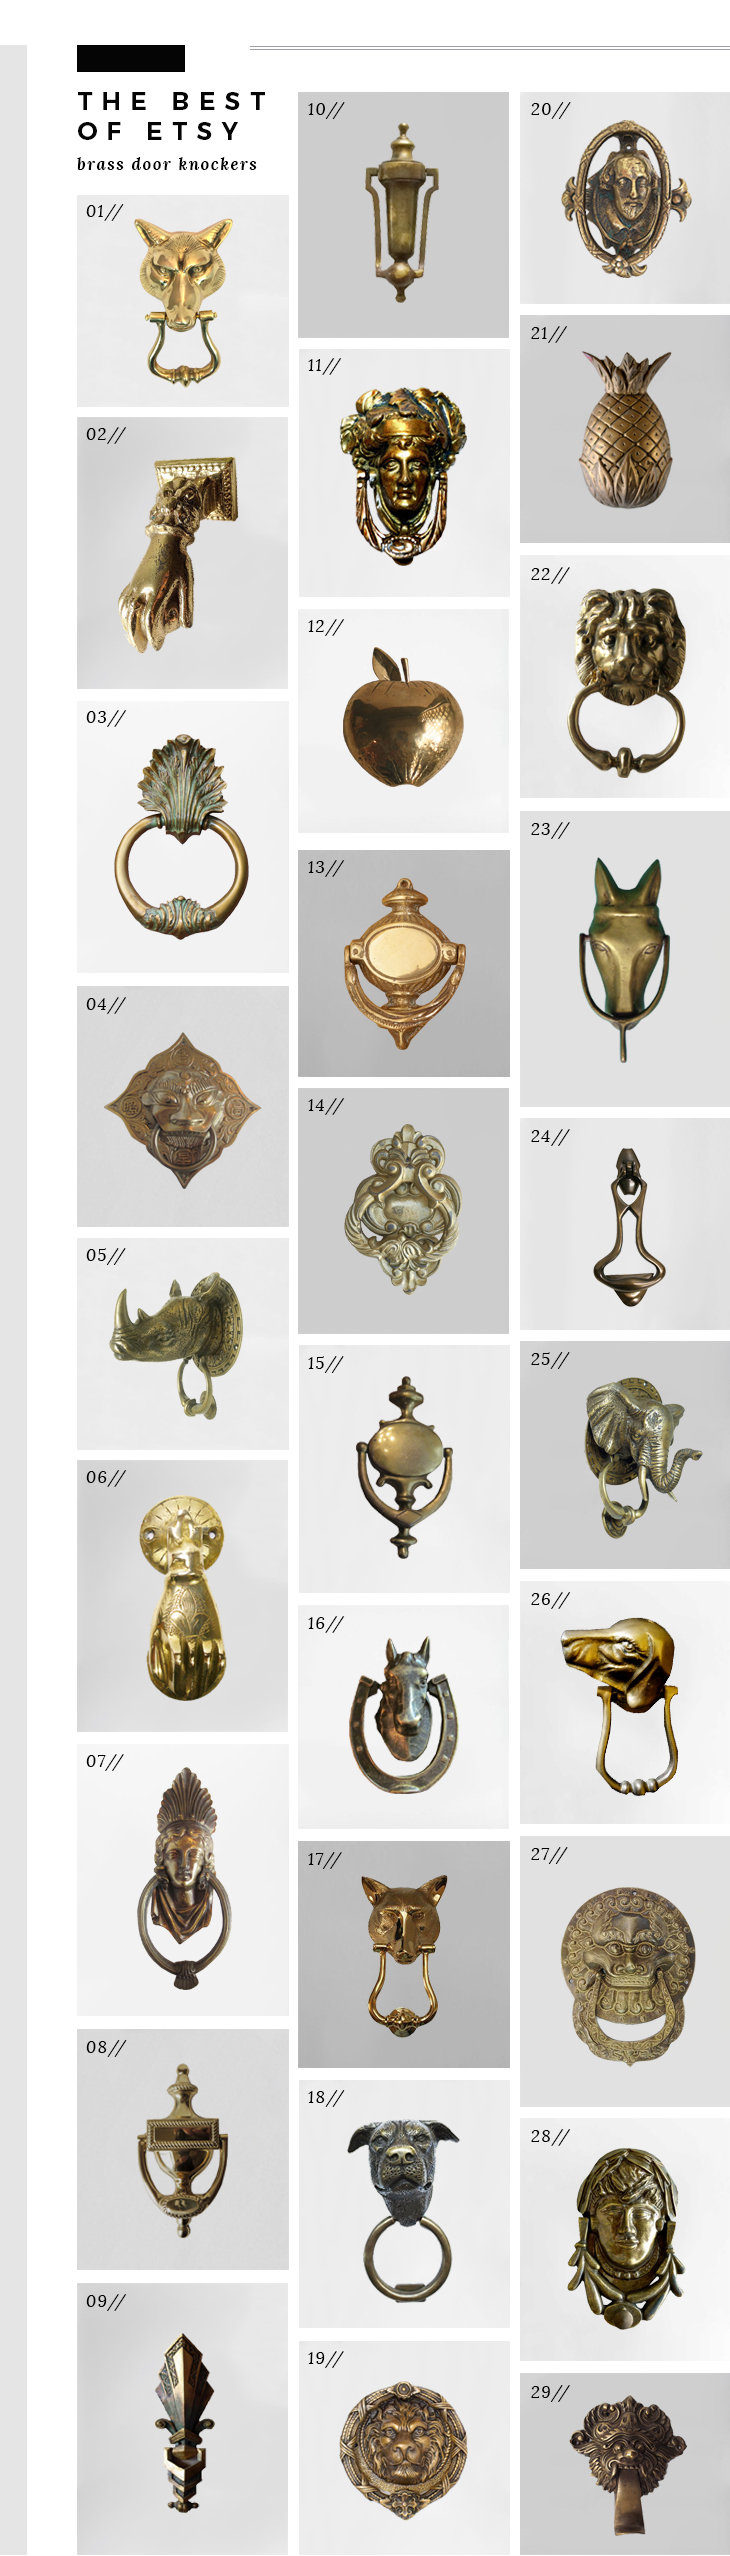 best-brass-door-knockers